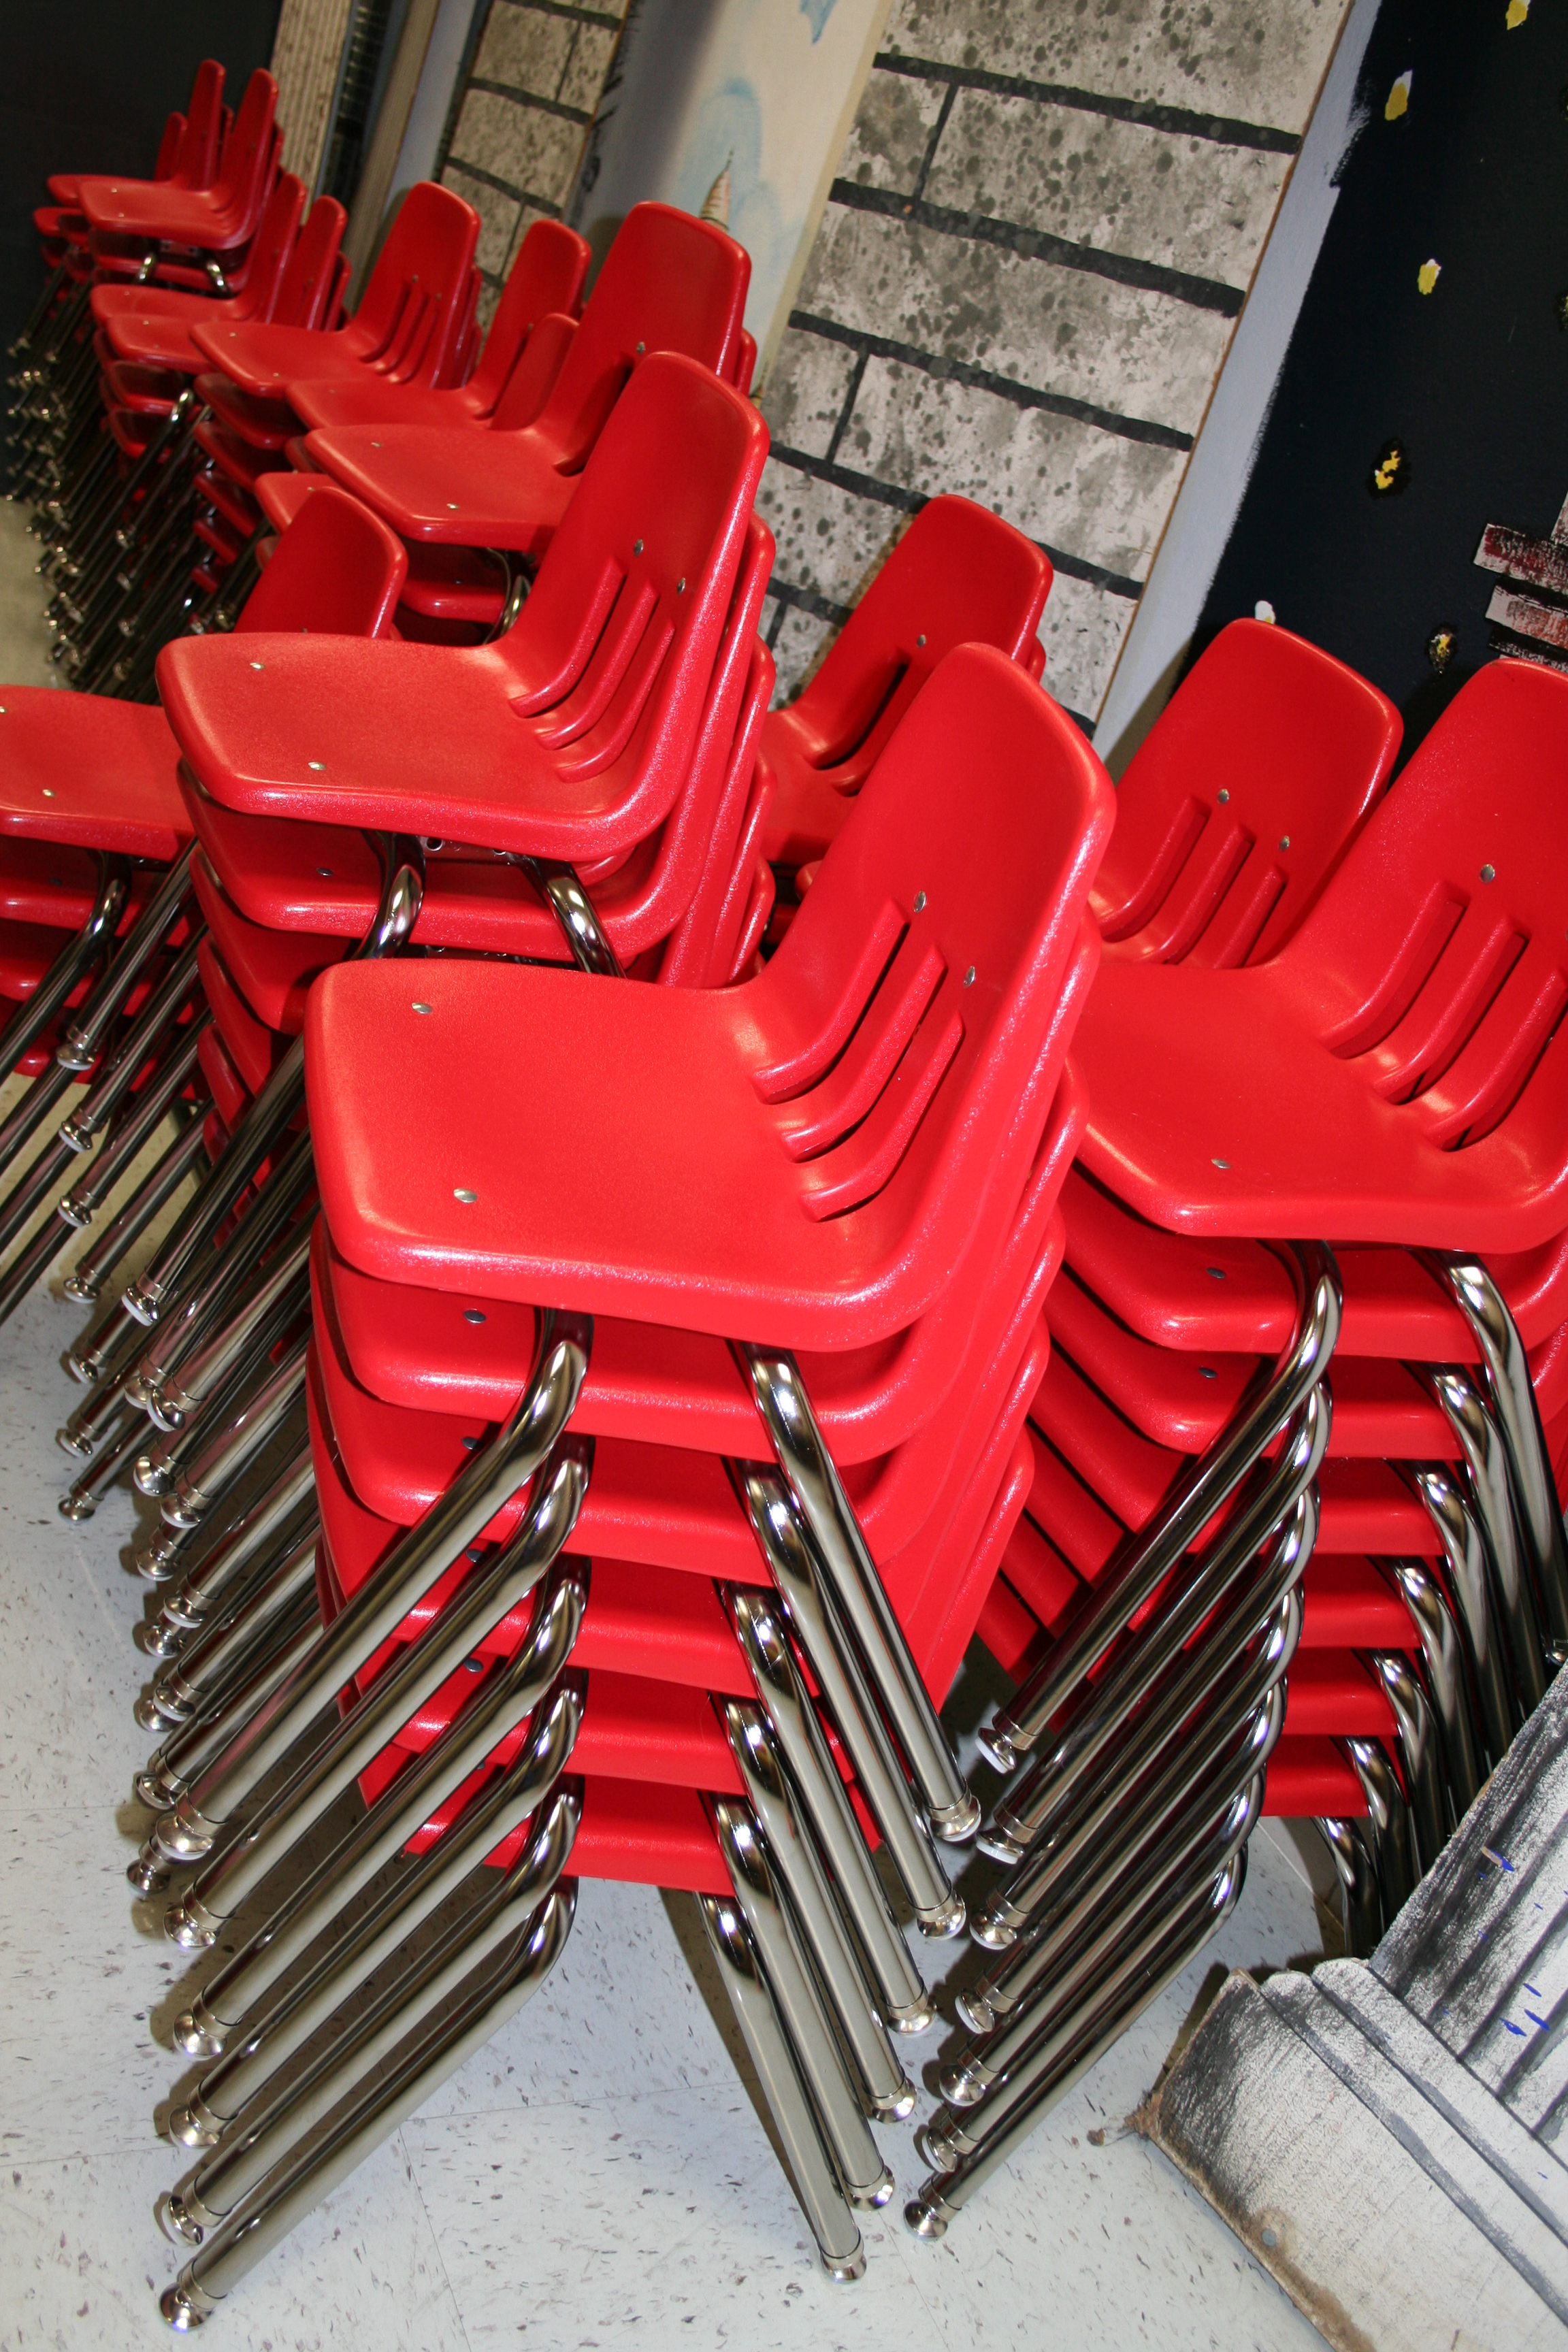 Classroom chairs stacked - Standard Issue Classroom Chairs